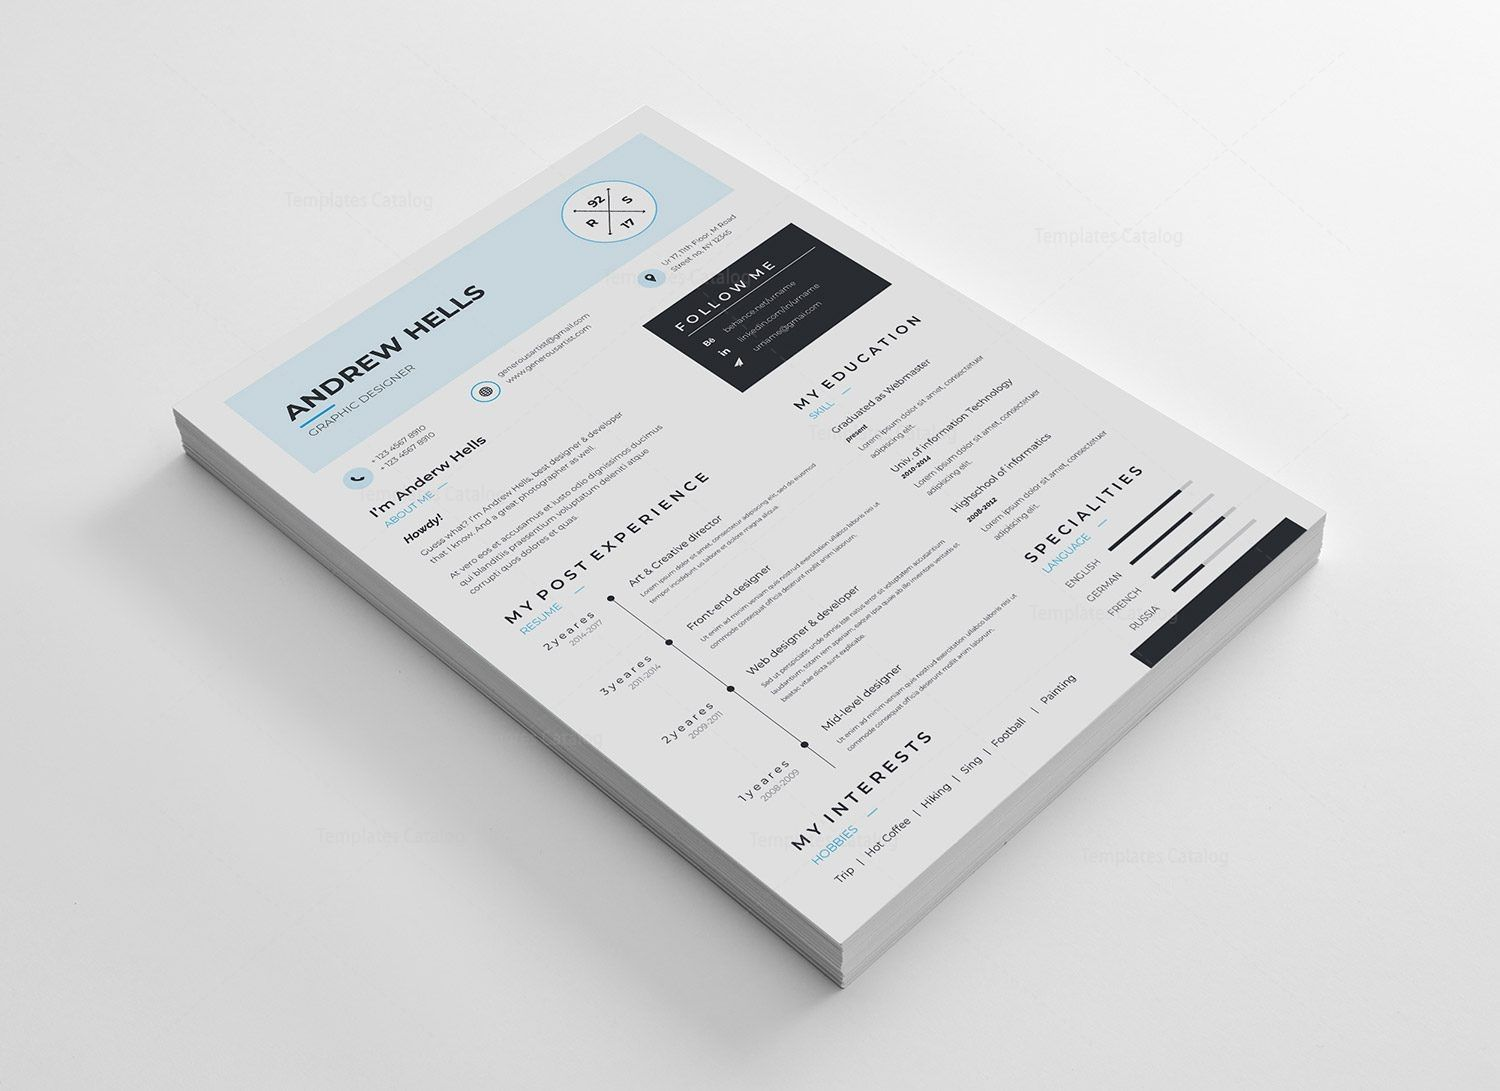 A4 Minimalist Resume Template 002978 - Minimalist resume, Minimalist resume template, Resume design template, Resume template, Clean resume template, Resume - A4 Minimalist Resume Template  The perfect way to make the best impression  Strong typographic structure and very easy to use and customize  The resume template